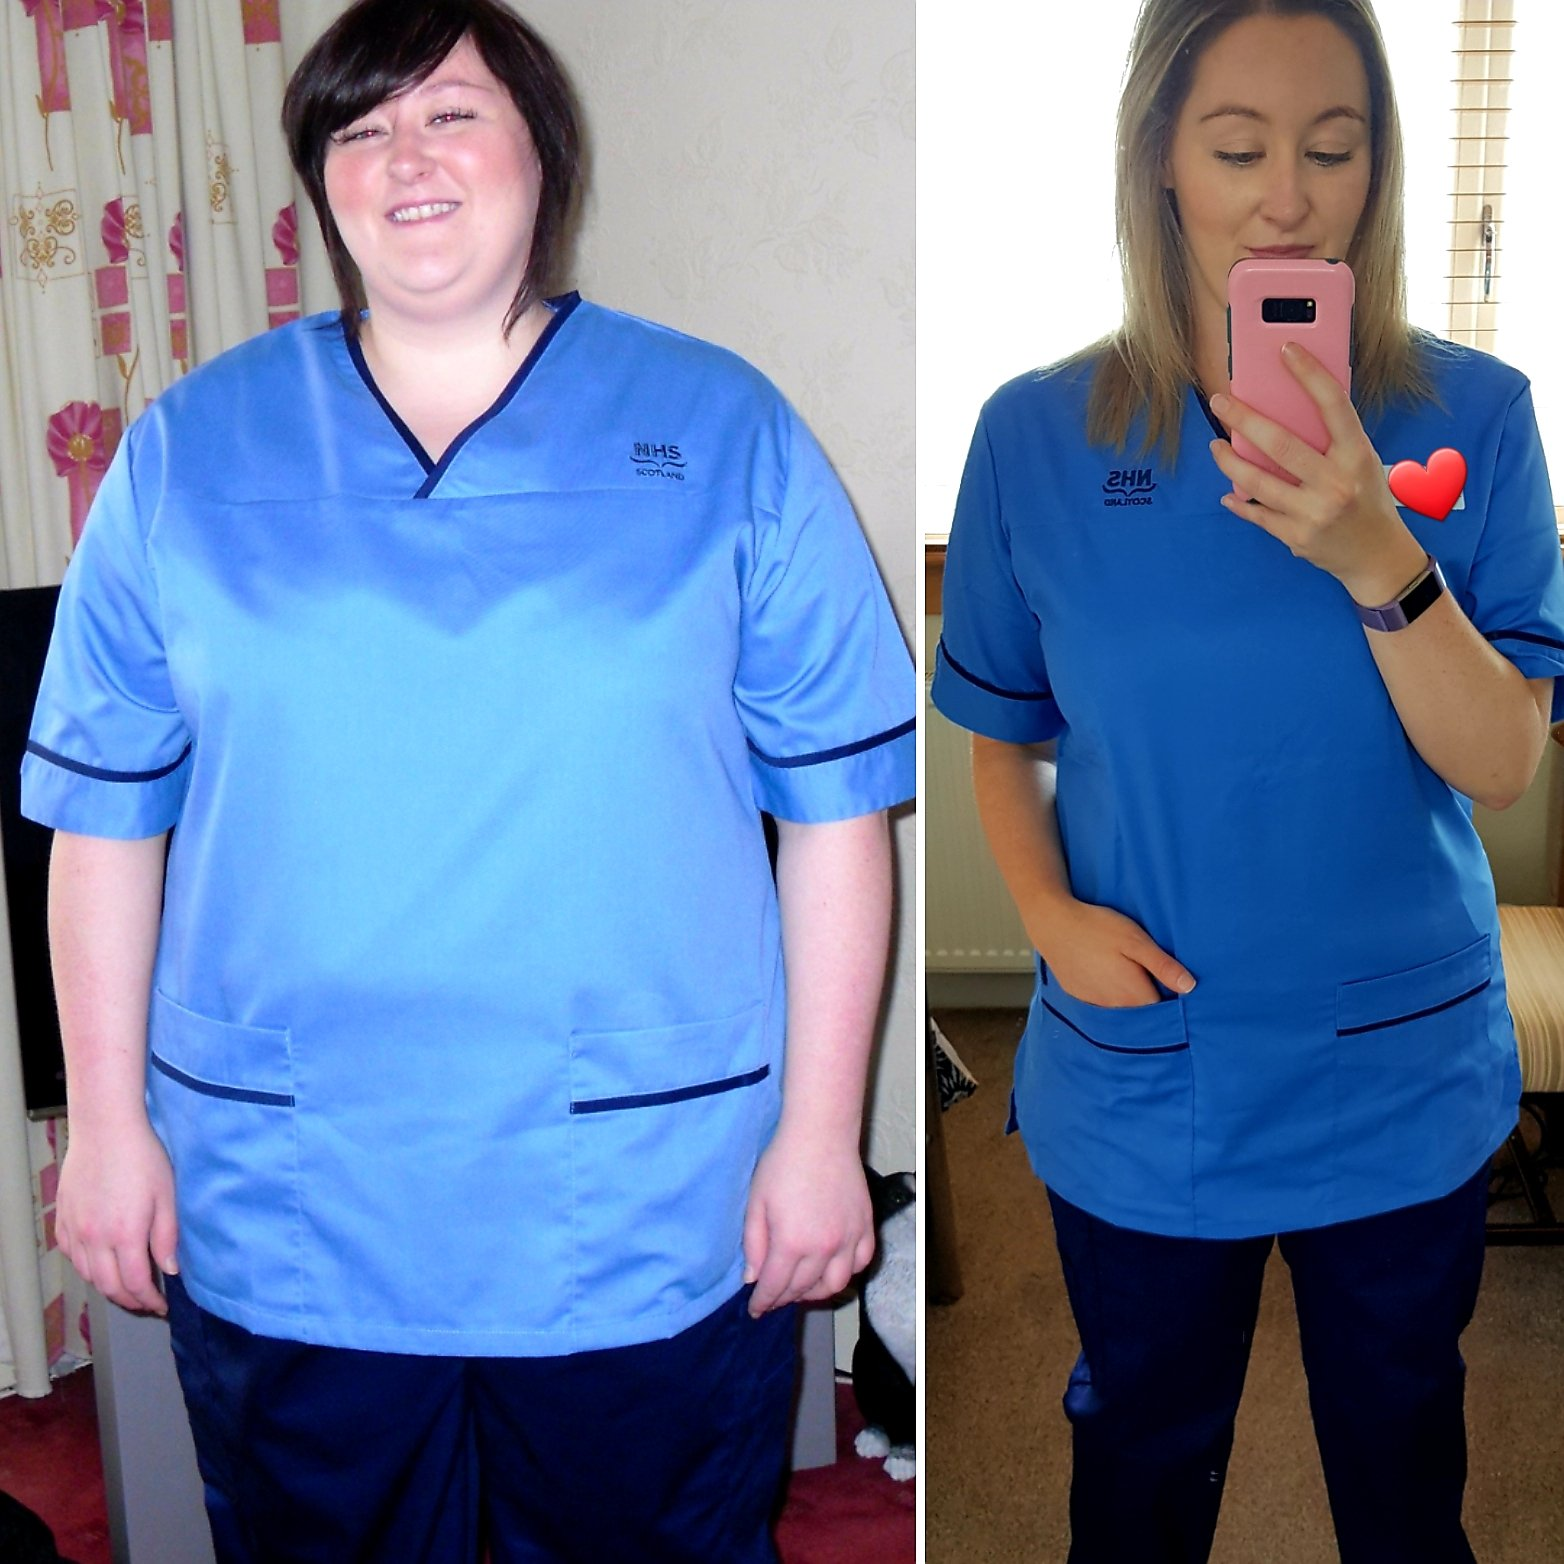 114 Incredible Before-And-After Weight Loss Pics You Wont